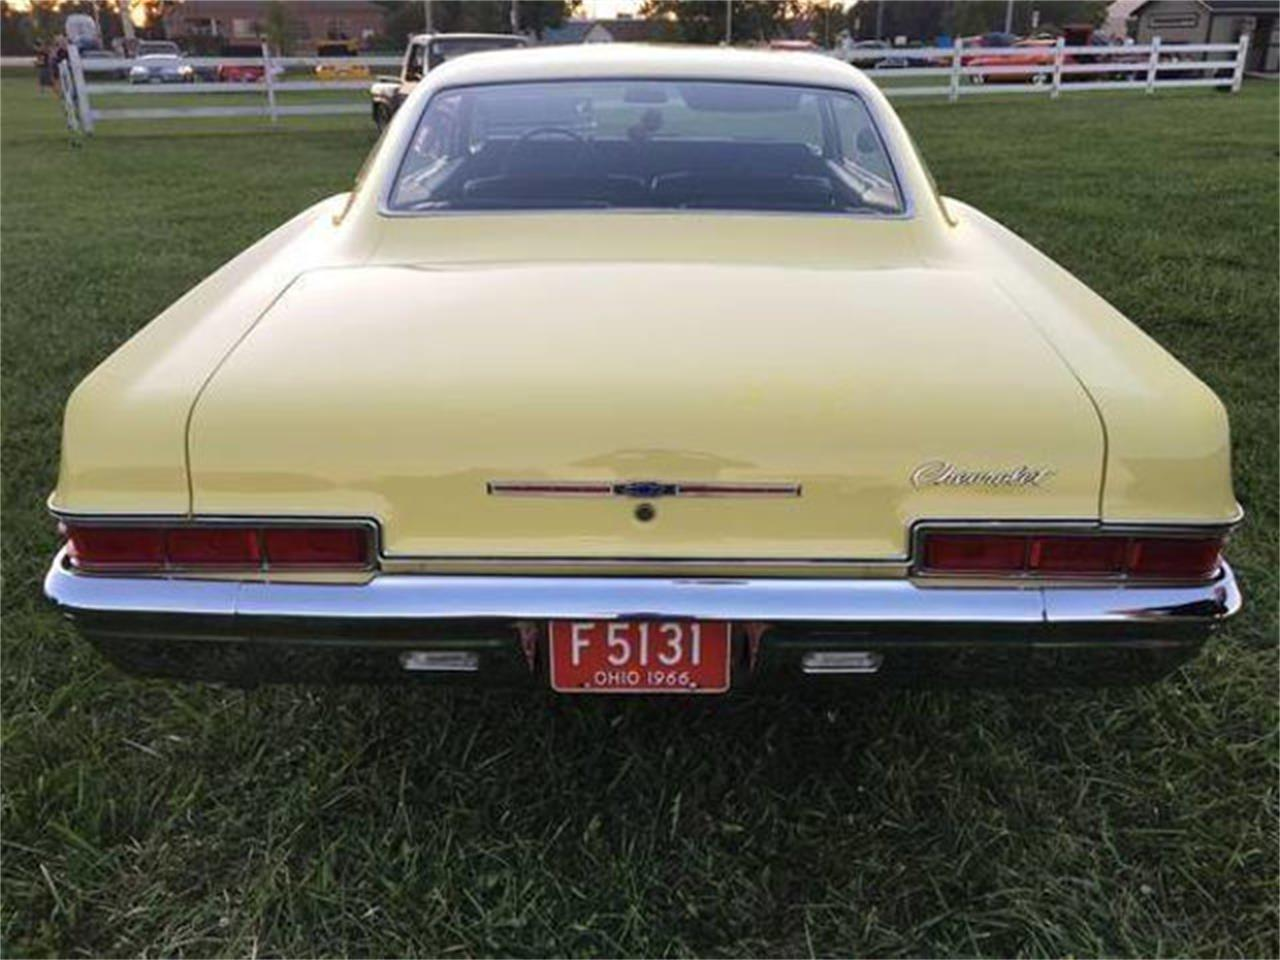 1966 Chevrolet Impala (CC-1255164) for sale in Long Island, New York